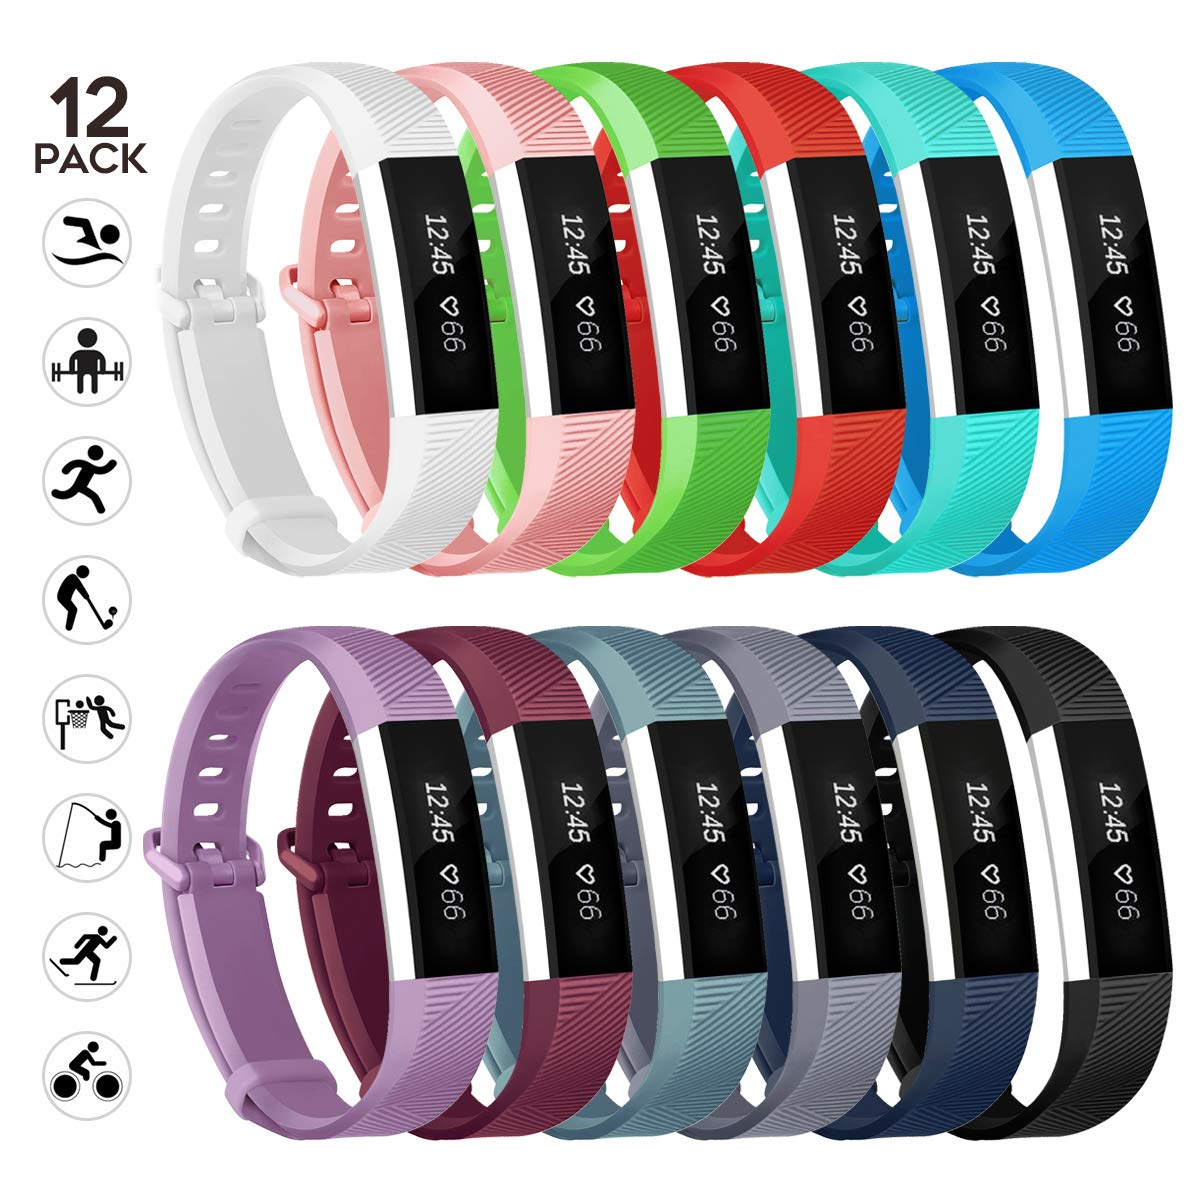 sunyfeel Compatible with Alta HR and Alta Band Replacement, Fashion Sports Silicone Personalized Replacement Bracelet with Metal Clasp for Alta HR/Alta (Small, 12pcs)